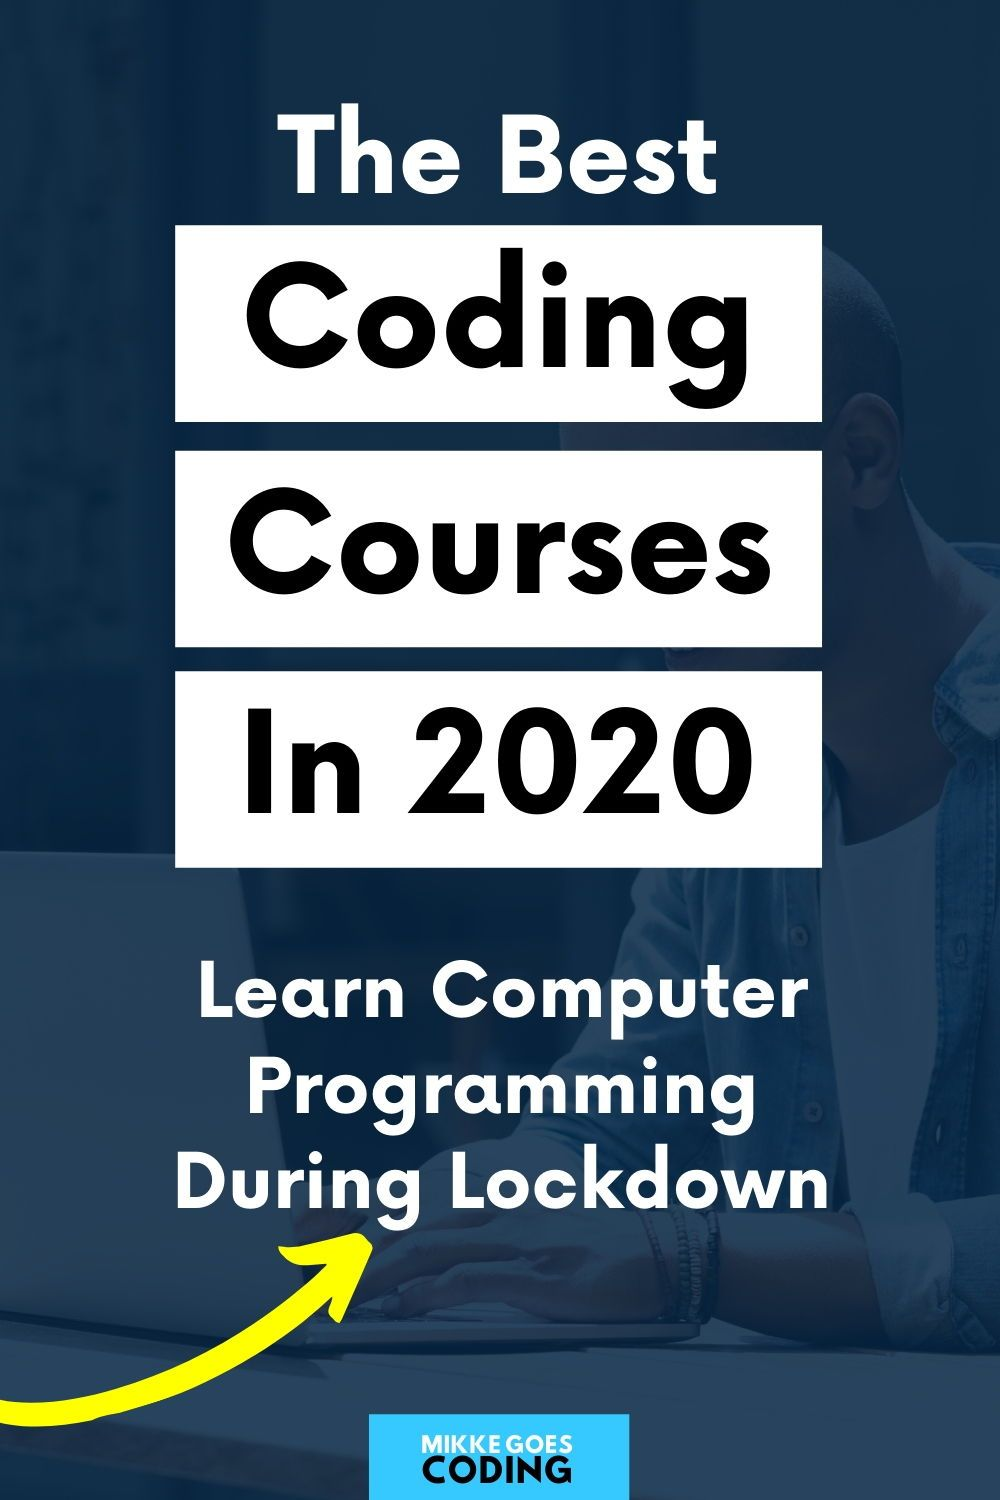 17 Best Websites to Learn Coding Online in 2020 (For Free